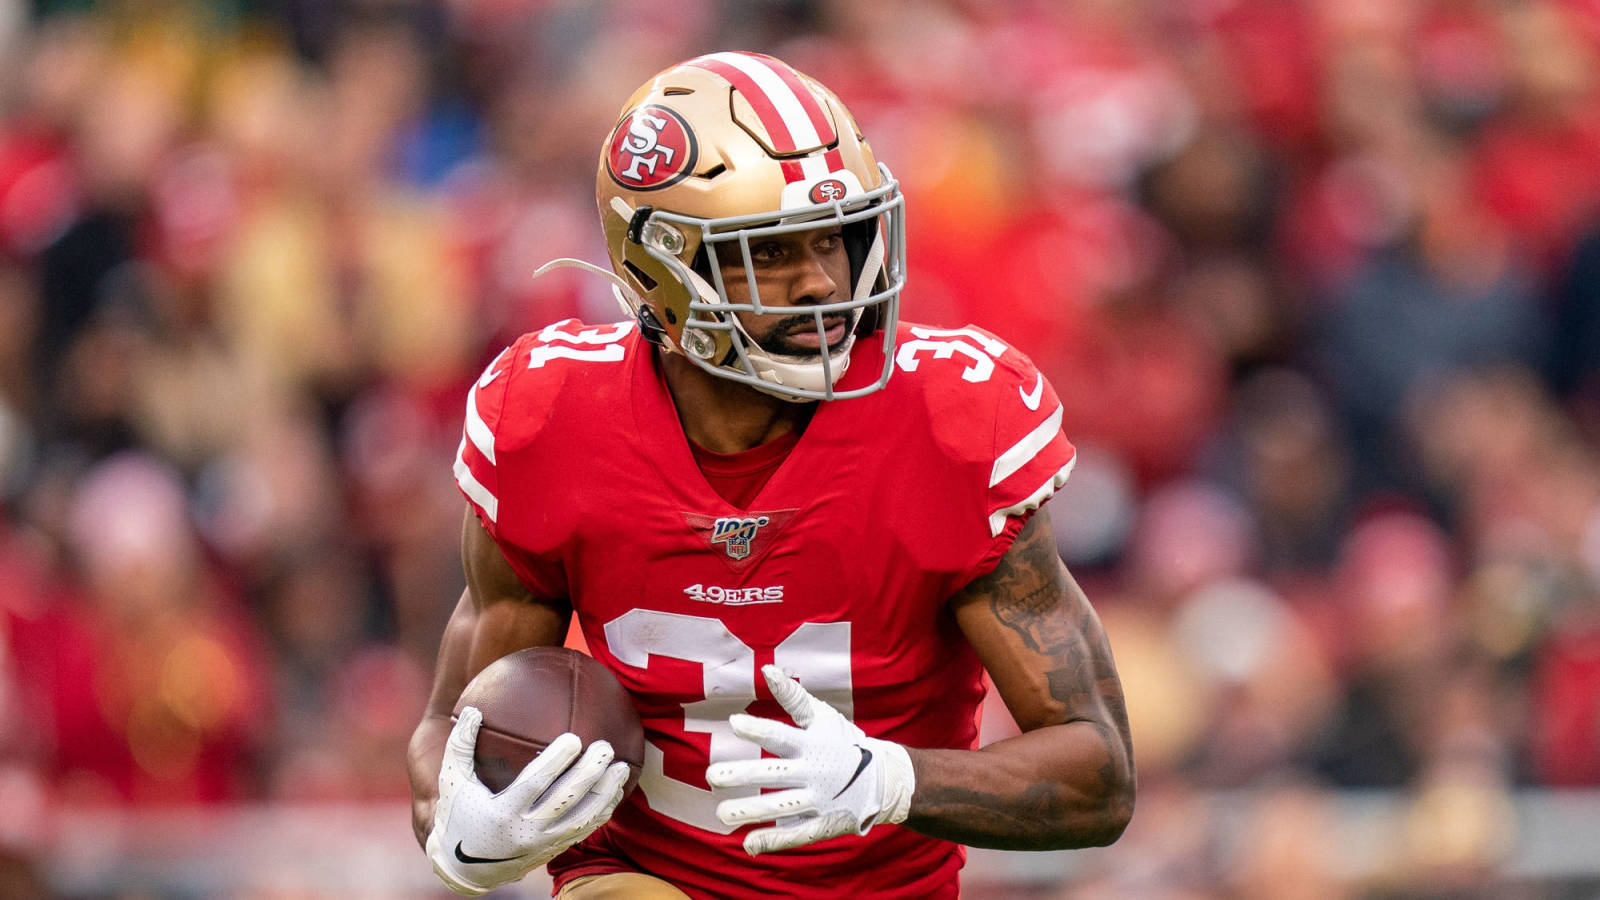 Raheem Mostert says family is concerned about return to football amid pandemic